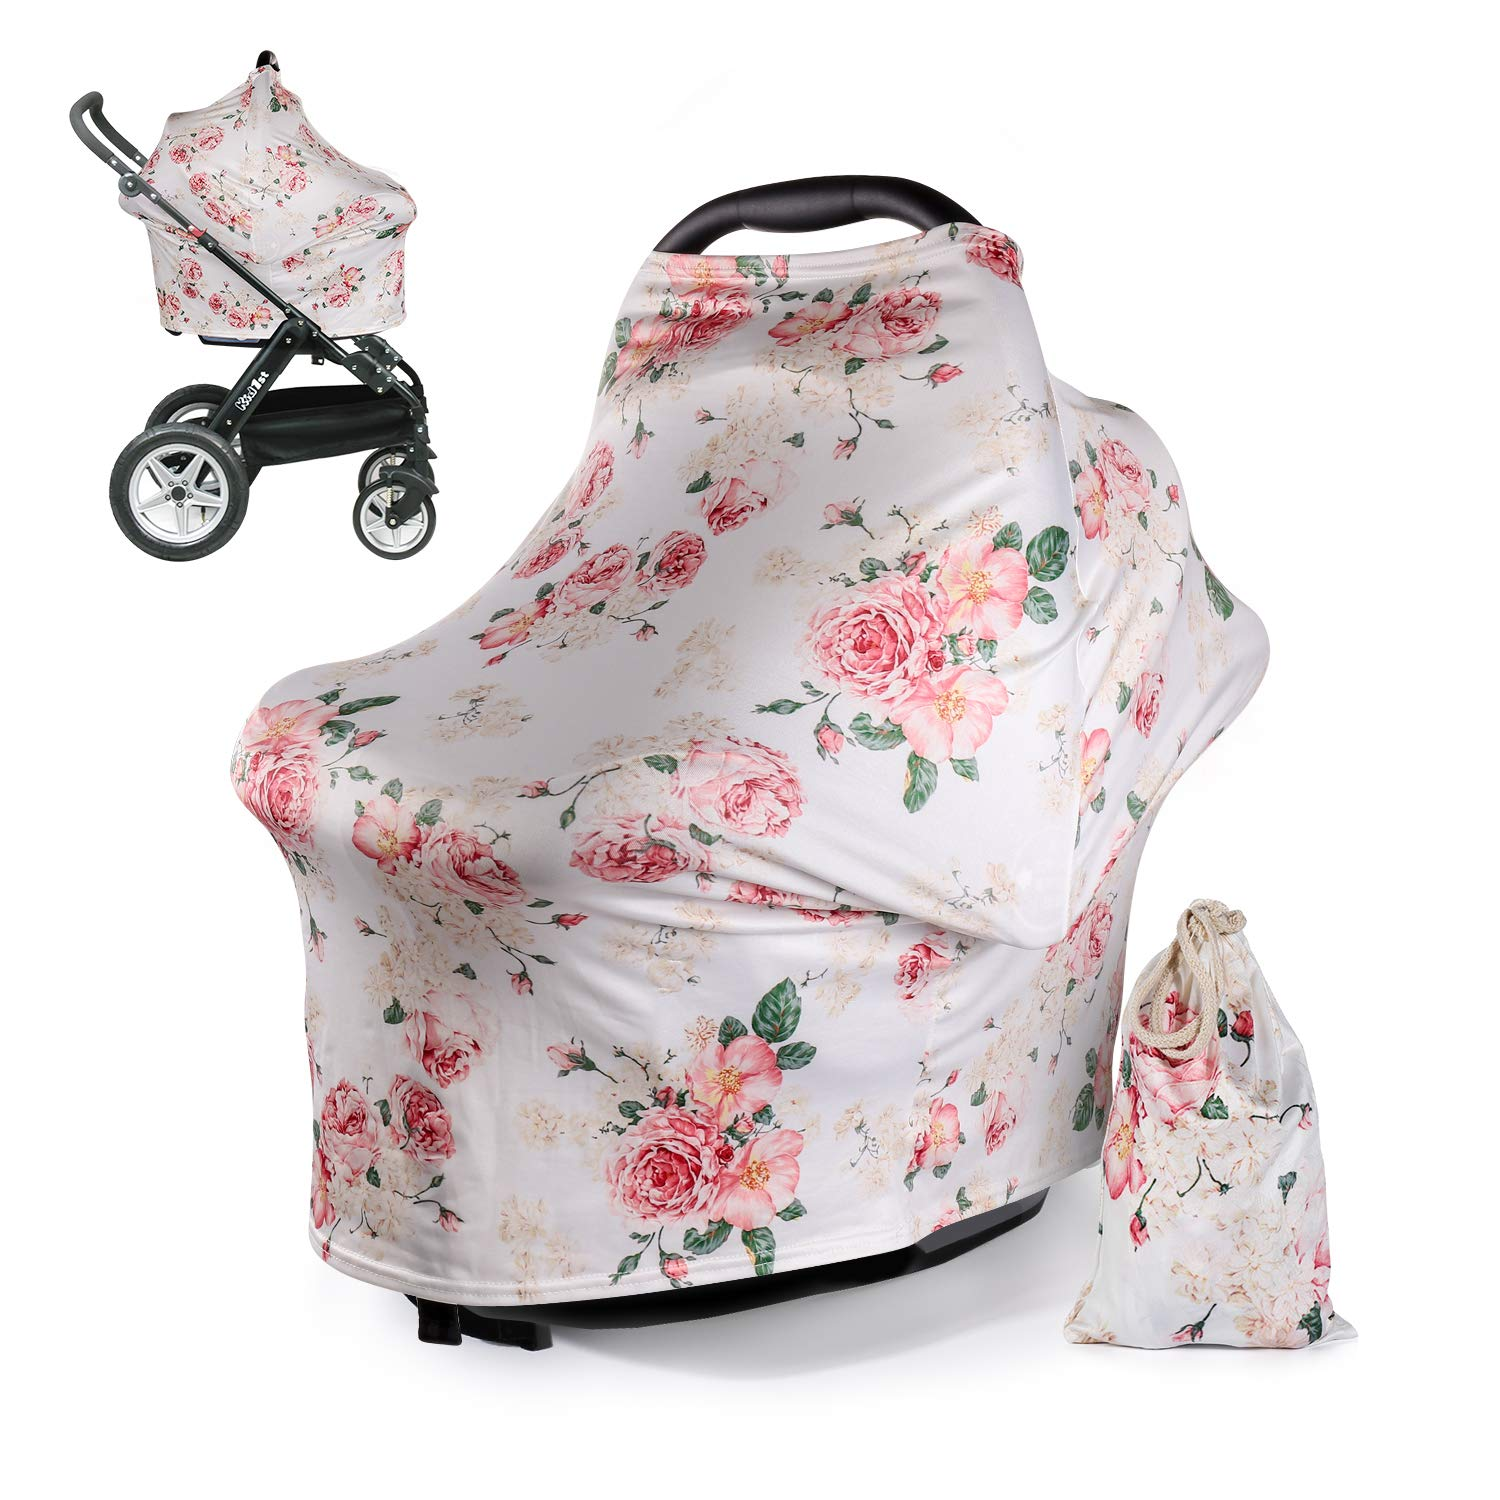 Superb Dsyj Nursing Cover Baby Breastfeeding Scarf With Free Matching Pouch Car Seat Covers Boys And Girls Shower Gifts Multifunctional Cover Floral Inzonedesignstudio Interior Chair Design Inzonedesignstudiocom